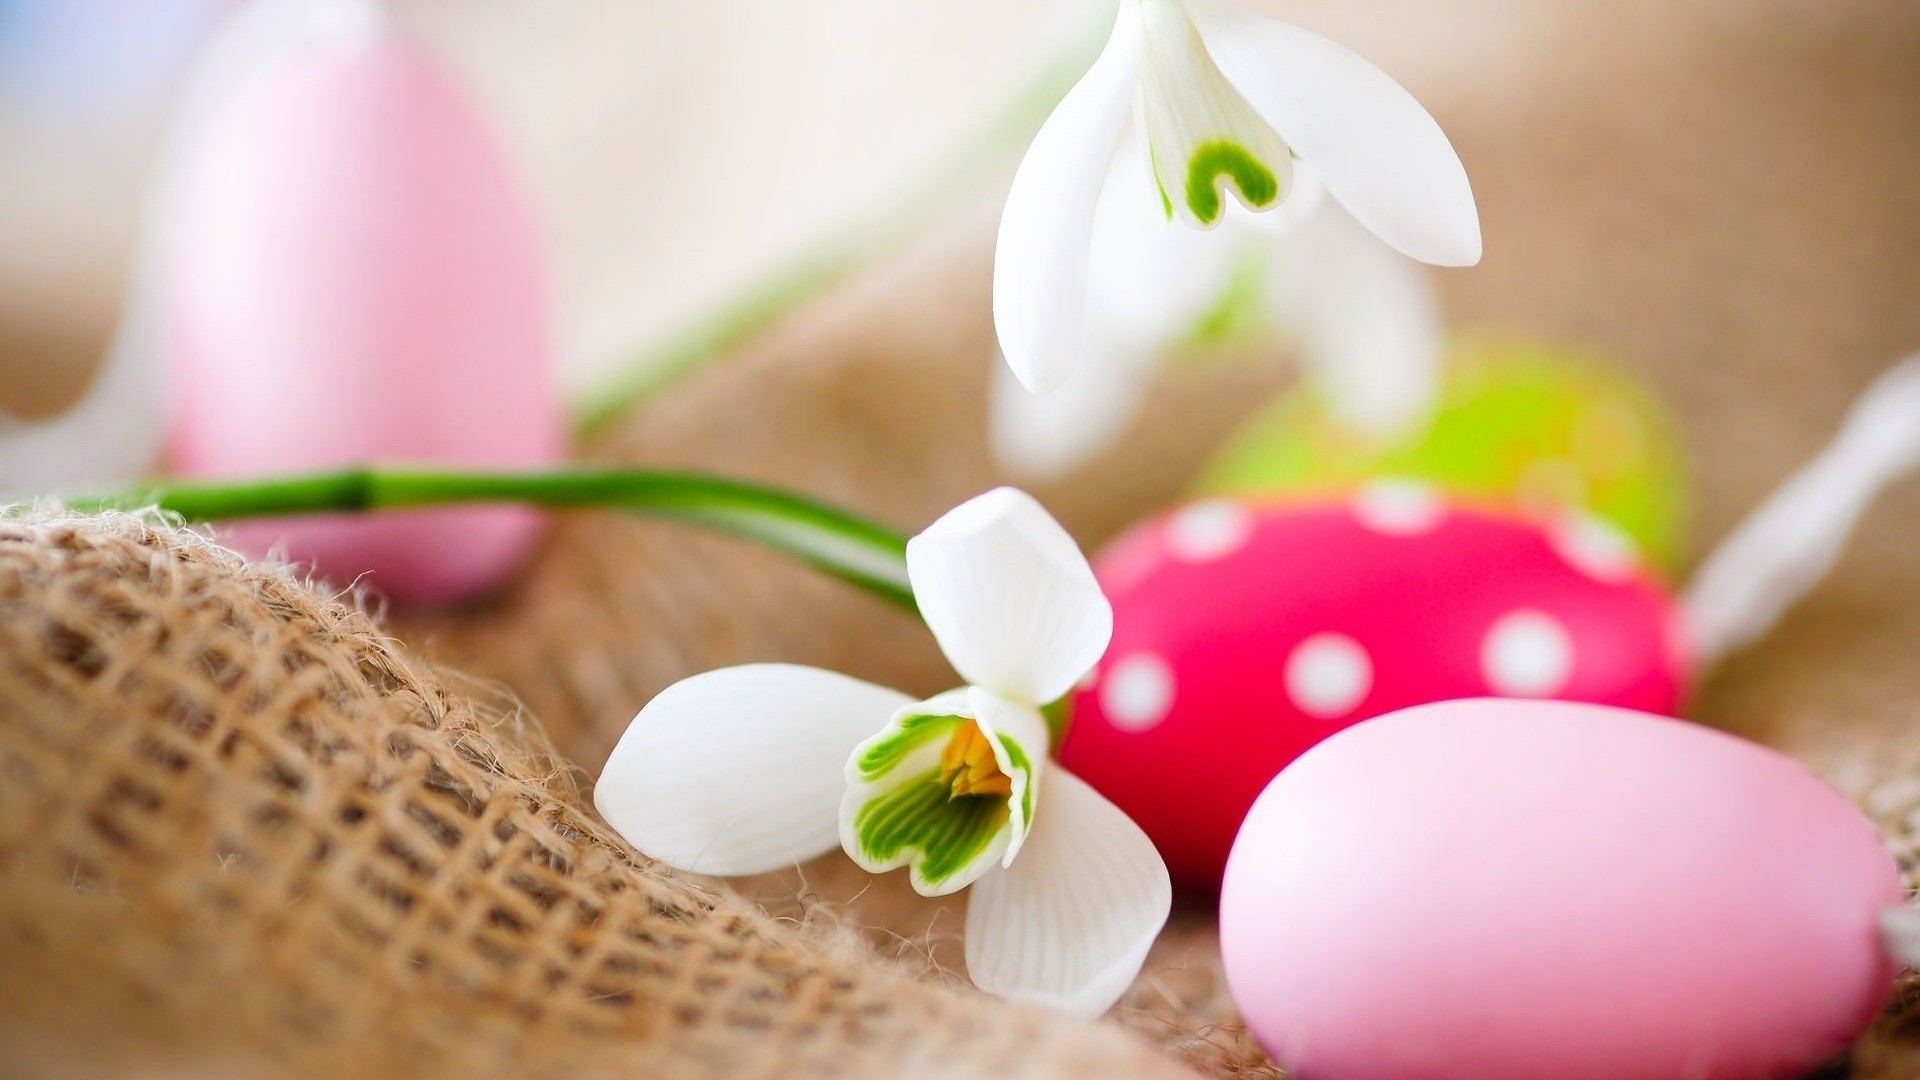 Happy Easter HD Wallpapers   Wallpaper High Definition High Quality 1920x1080